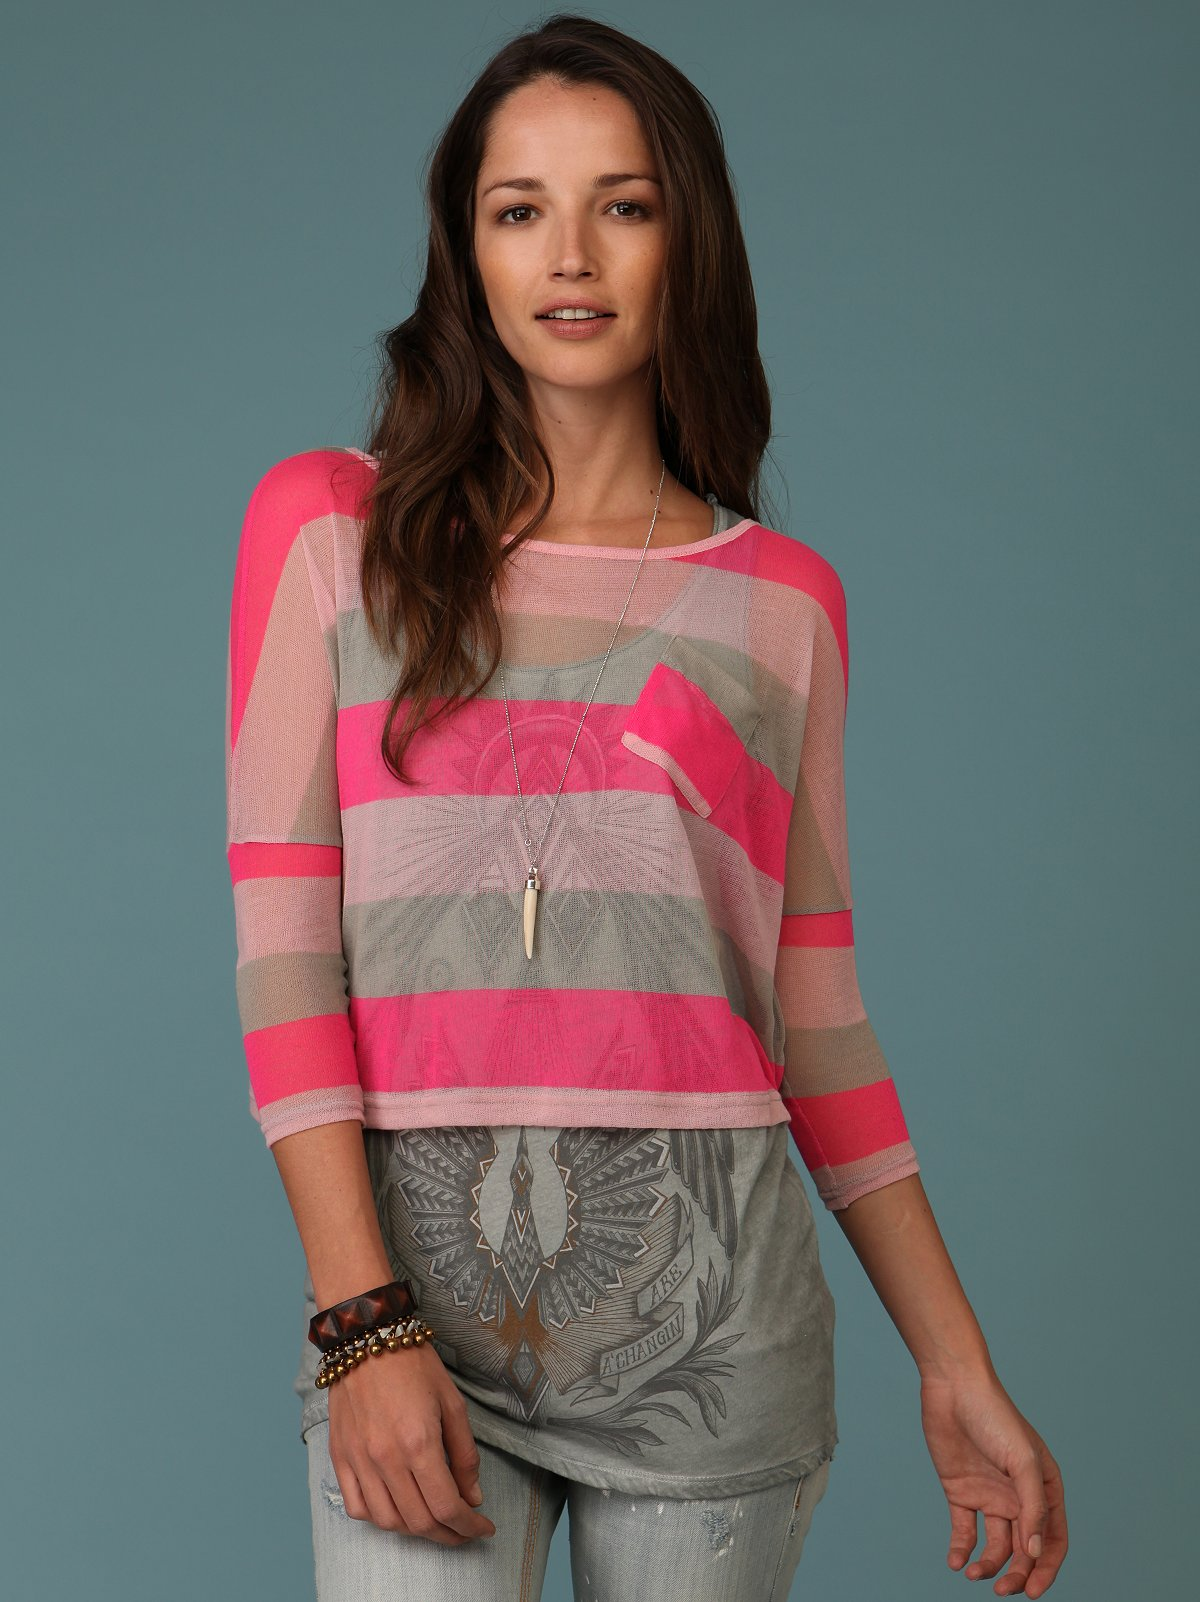 Decorated In Stripes Tee